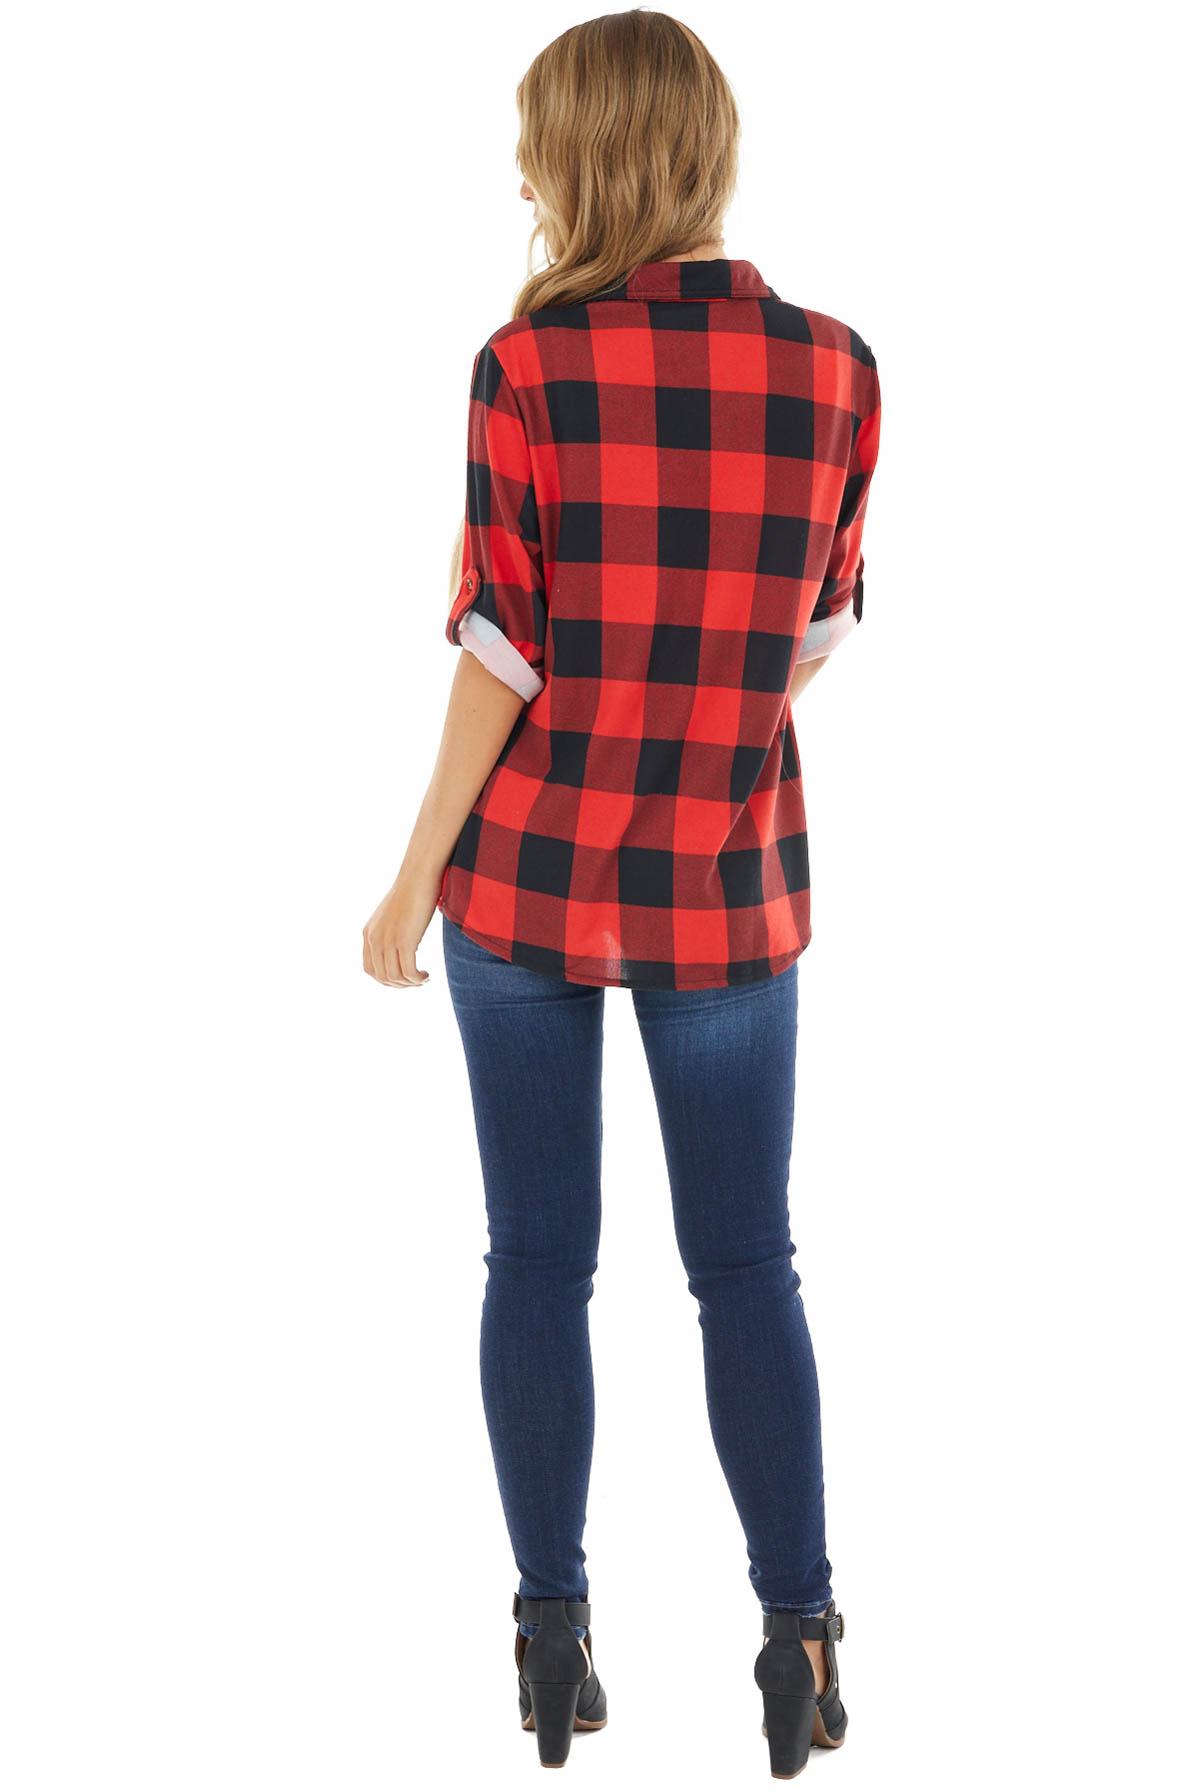 Lipstick Red and Black Buffalo Plaid Top with Chest Pocket